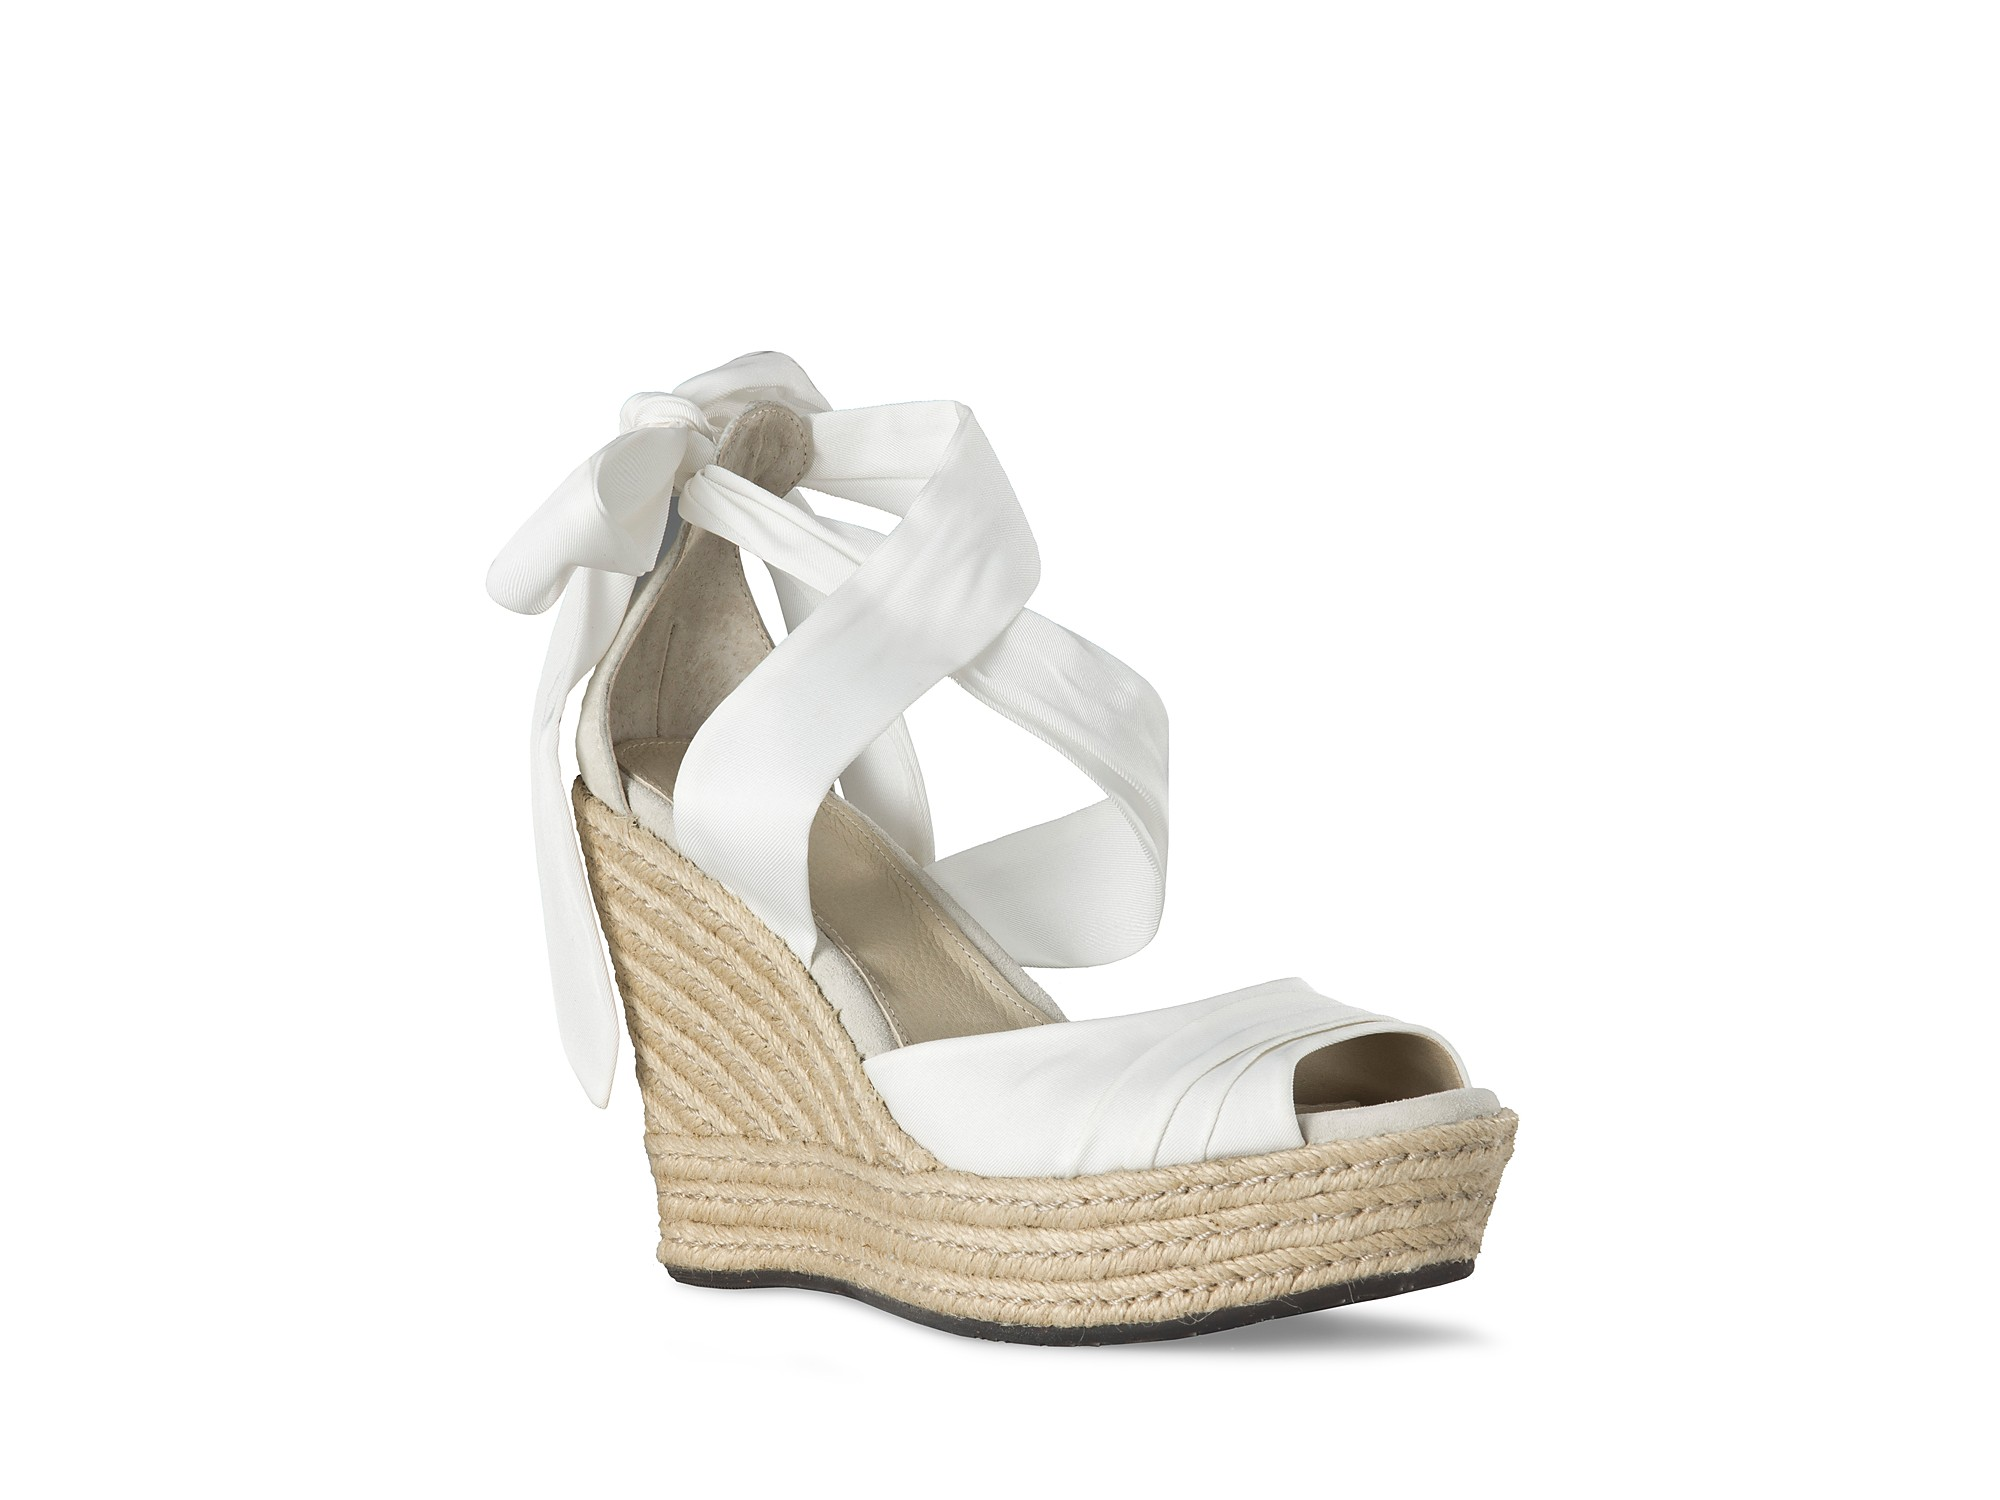 7b0e27c67d3 Lyst - UGG Sandals Lucianna Wrap in White